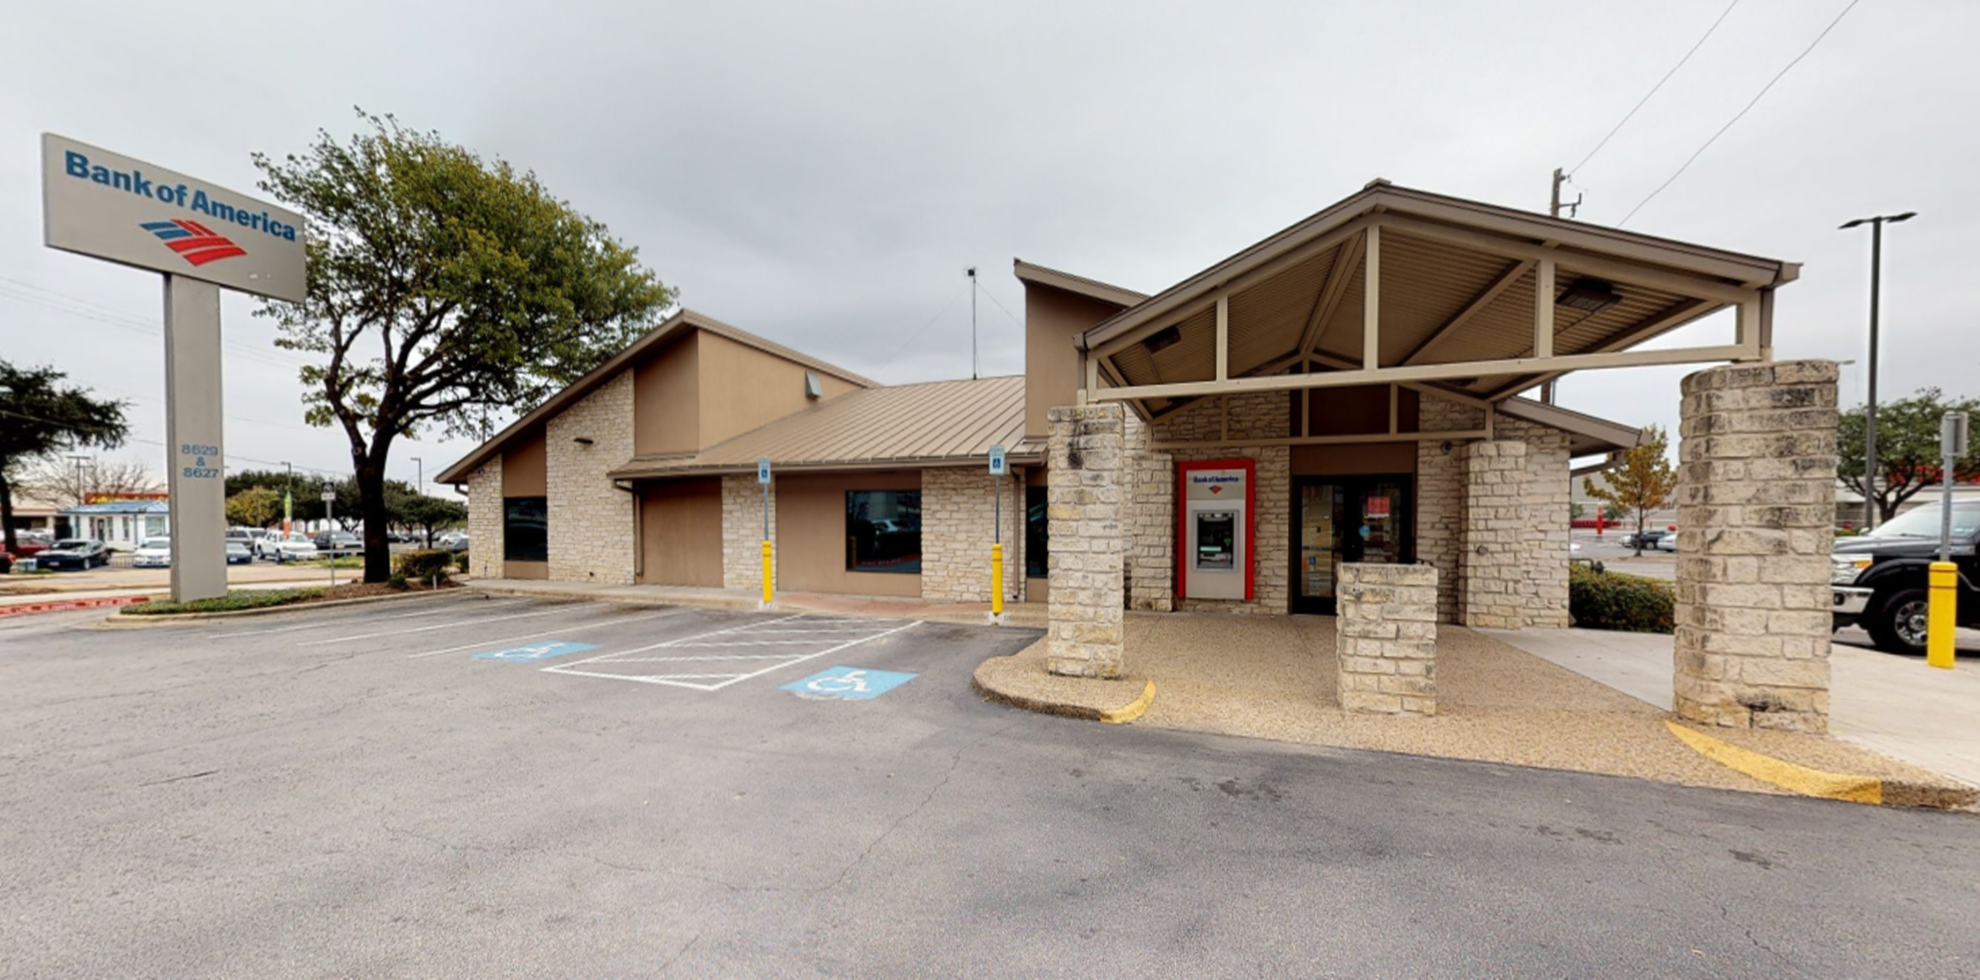 Bank of America financial center with drive-thru ATM and teller | 8627 Research Blvd, Austin, TX 78758